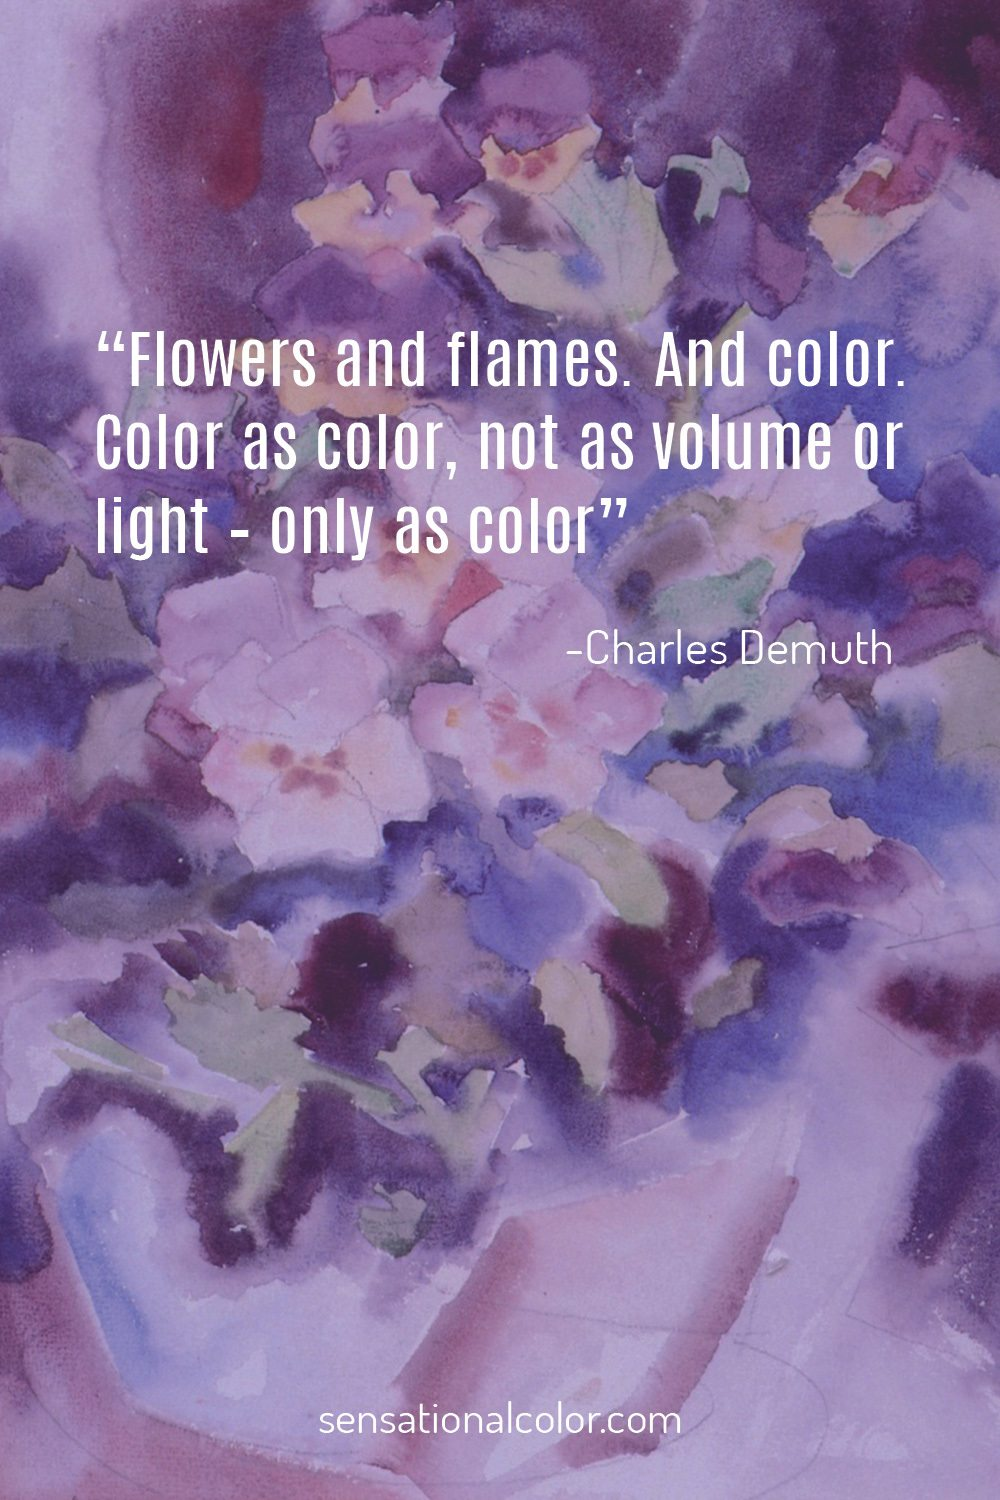 """Flowers and flames. And color. Color as color, not as volume or light – only as color."" - Charles Demuth"